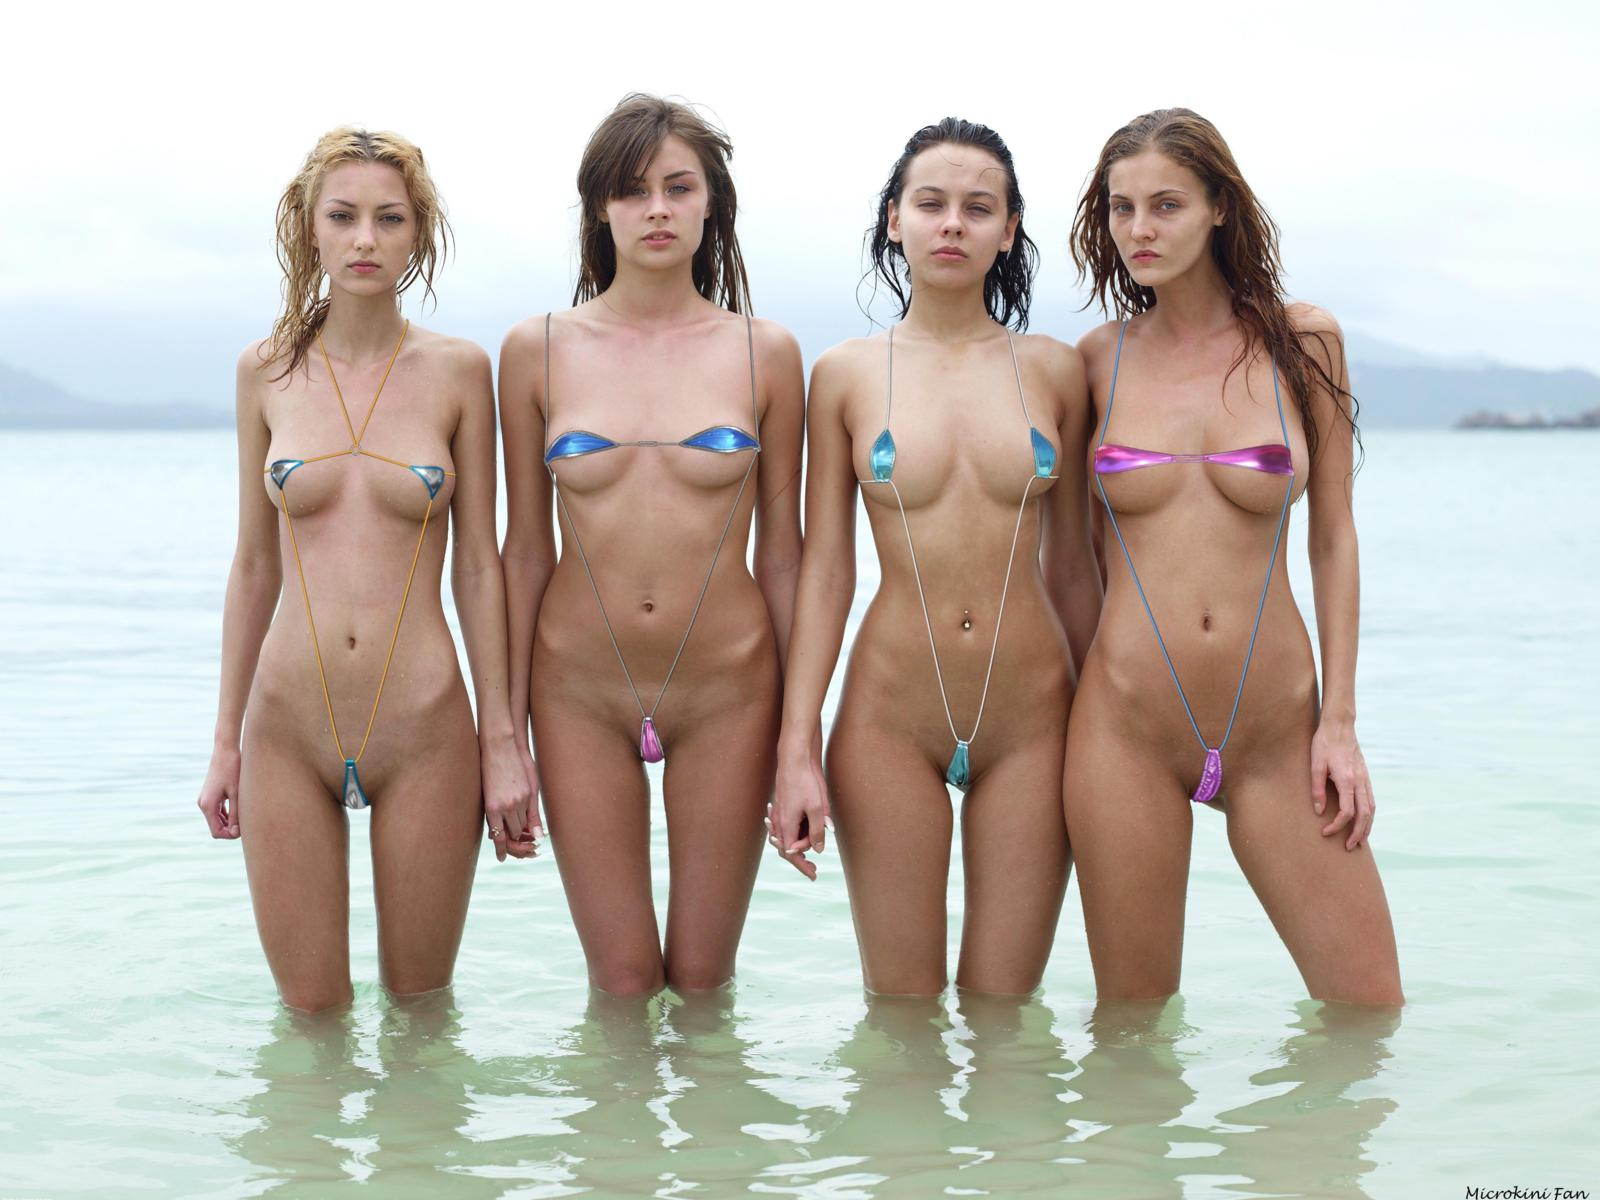 Download Photo 1600X1200, Microbikini, Group, Girls, Beach -6267